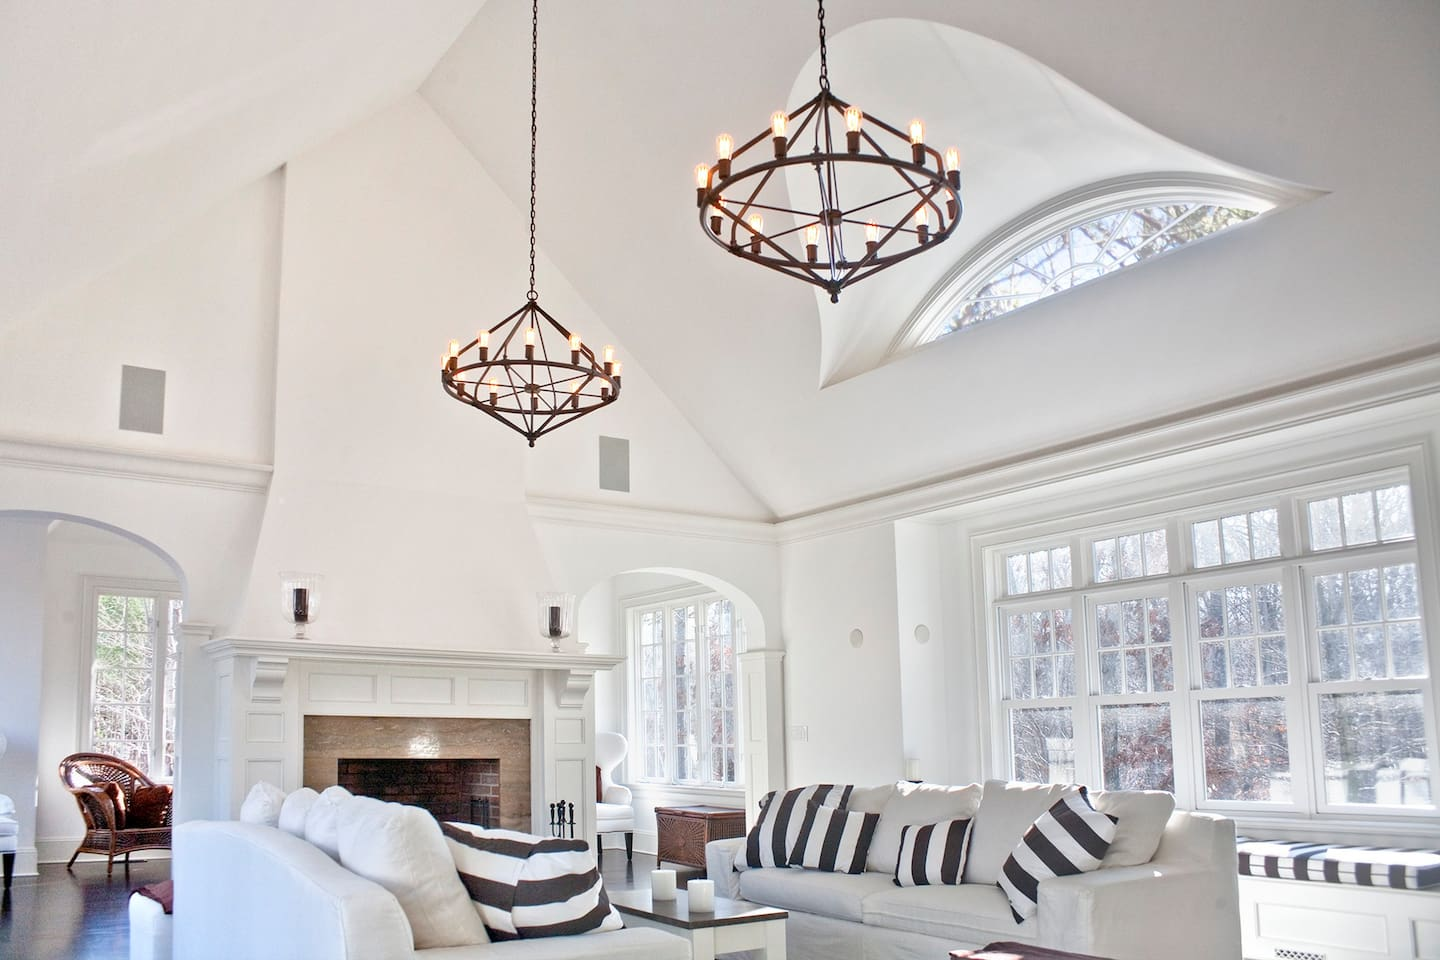 Great Room with 22 ft ceilings